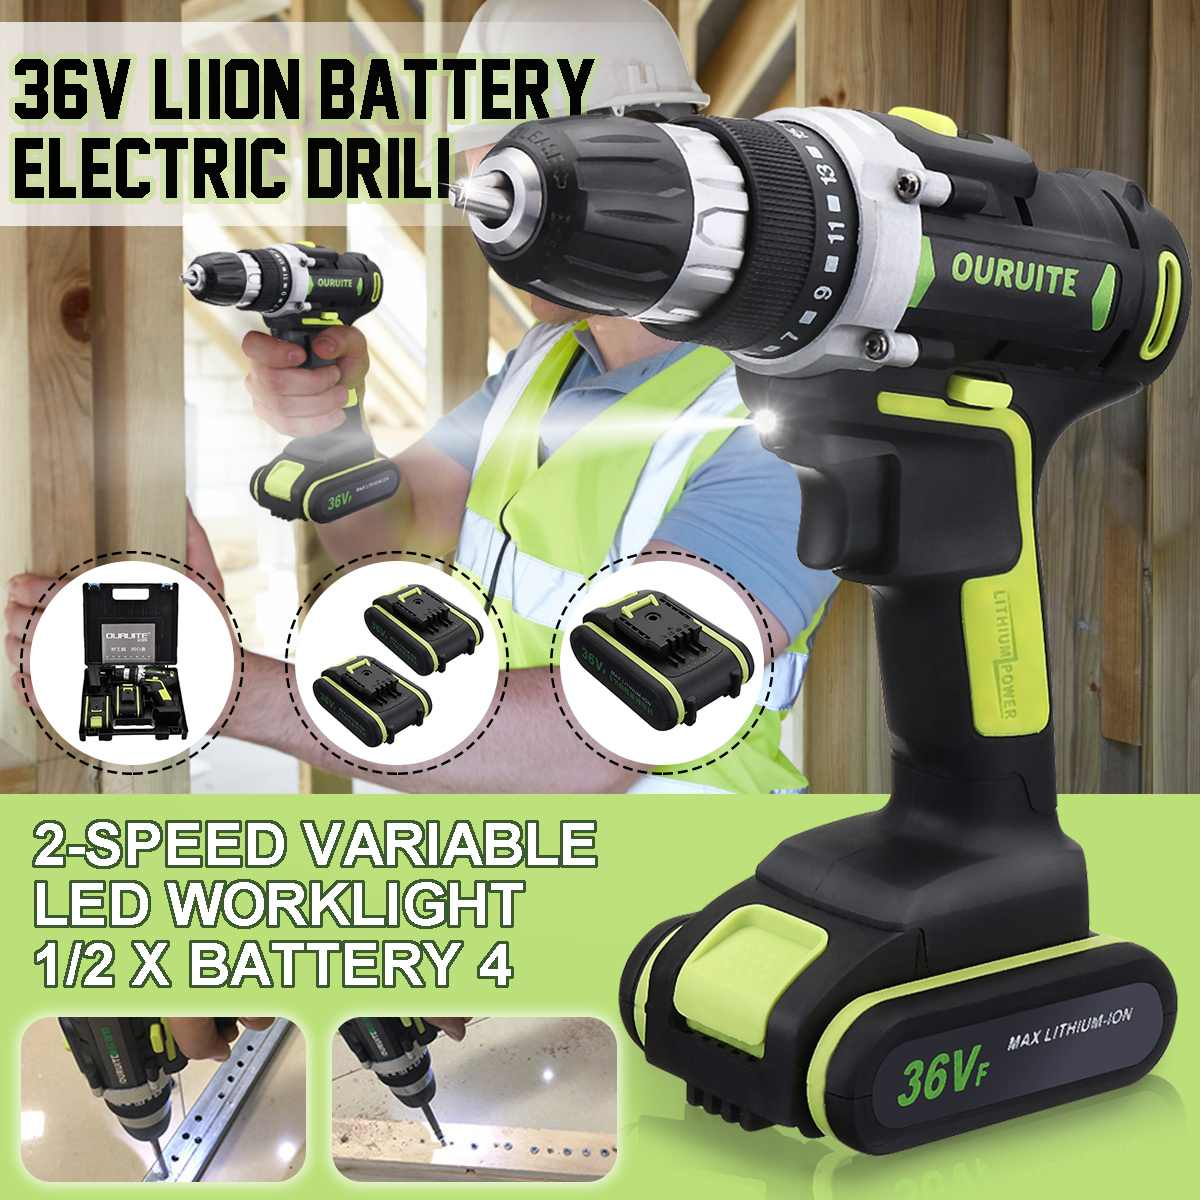 36V Professional Cordless Rechargeable Wireless Electric Screwdriver Cordless Drill Hammer Drill36V Professional Cordless Rechargeable Wireless Electric Screwdriver Cordless Drill Hammer Drill